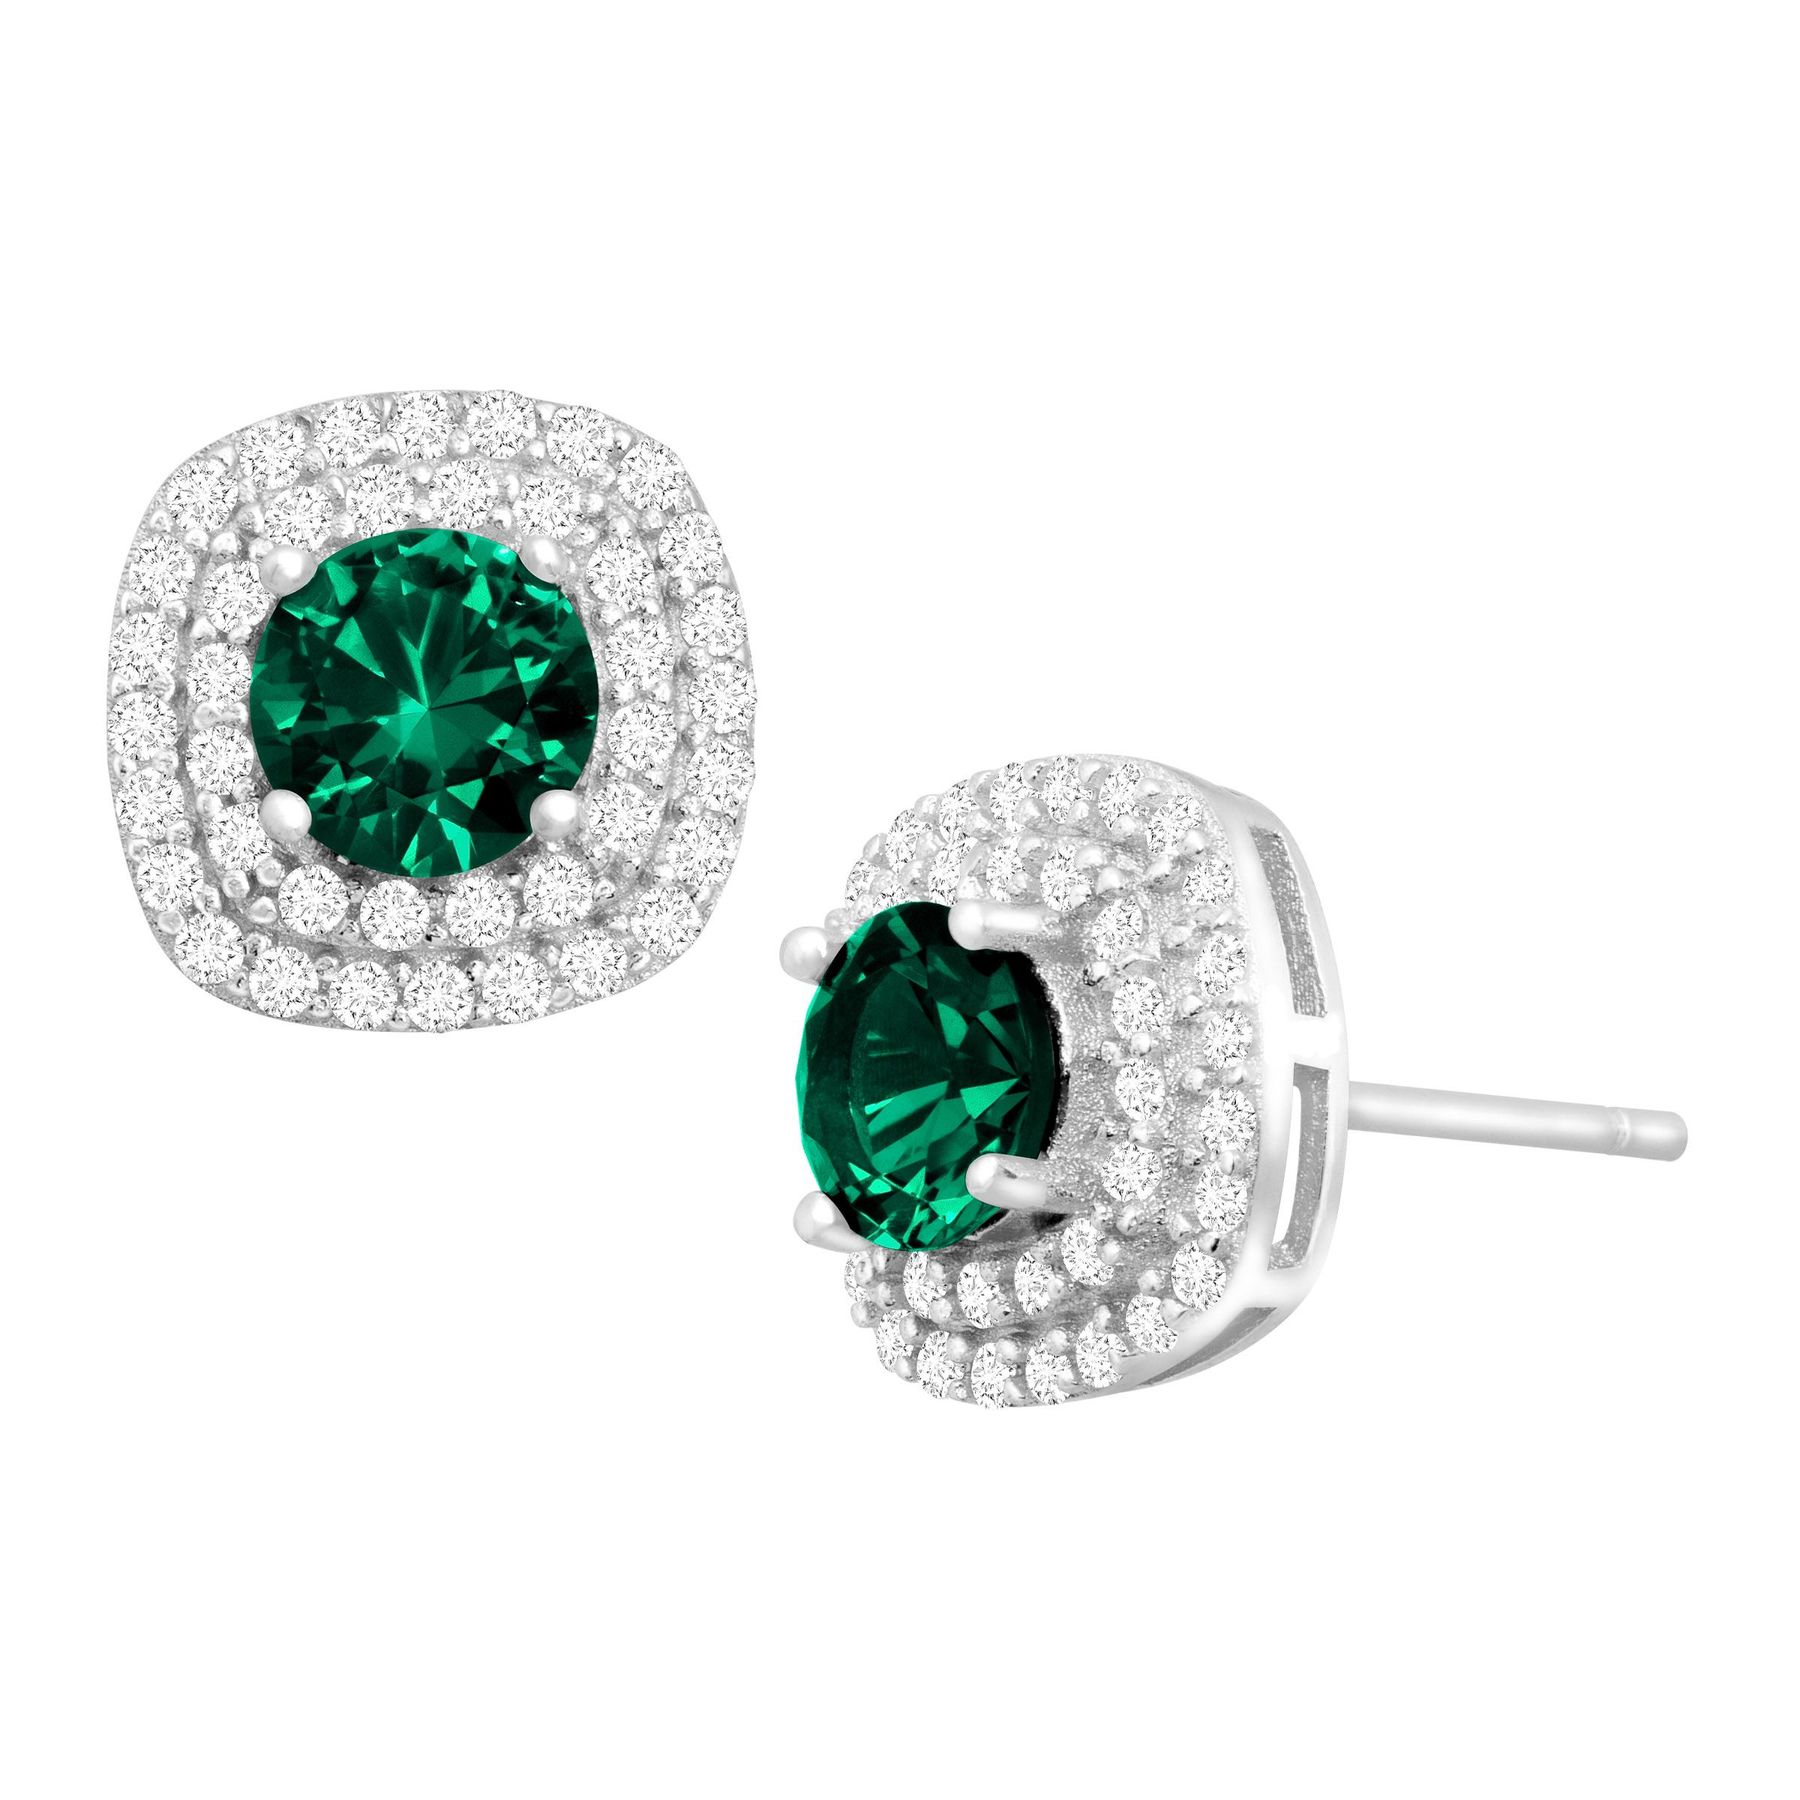 fine heyman product earrings emerald chicago drop marshall diamond jewelry pierce oscar